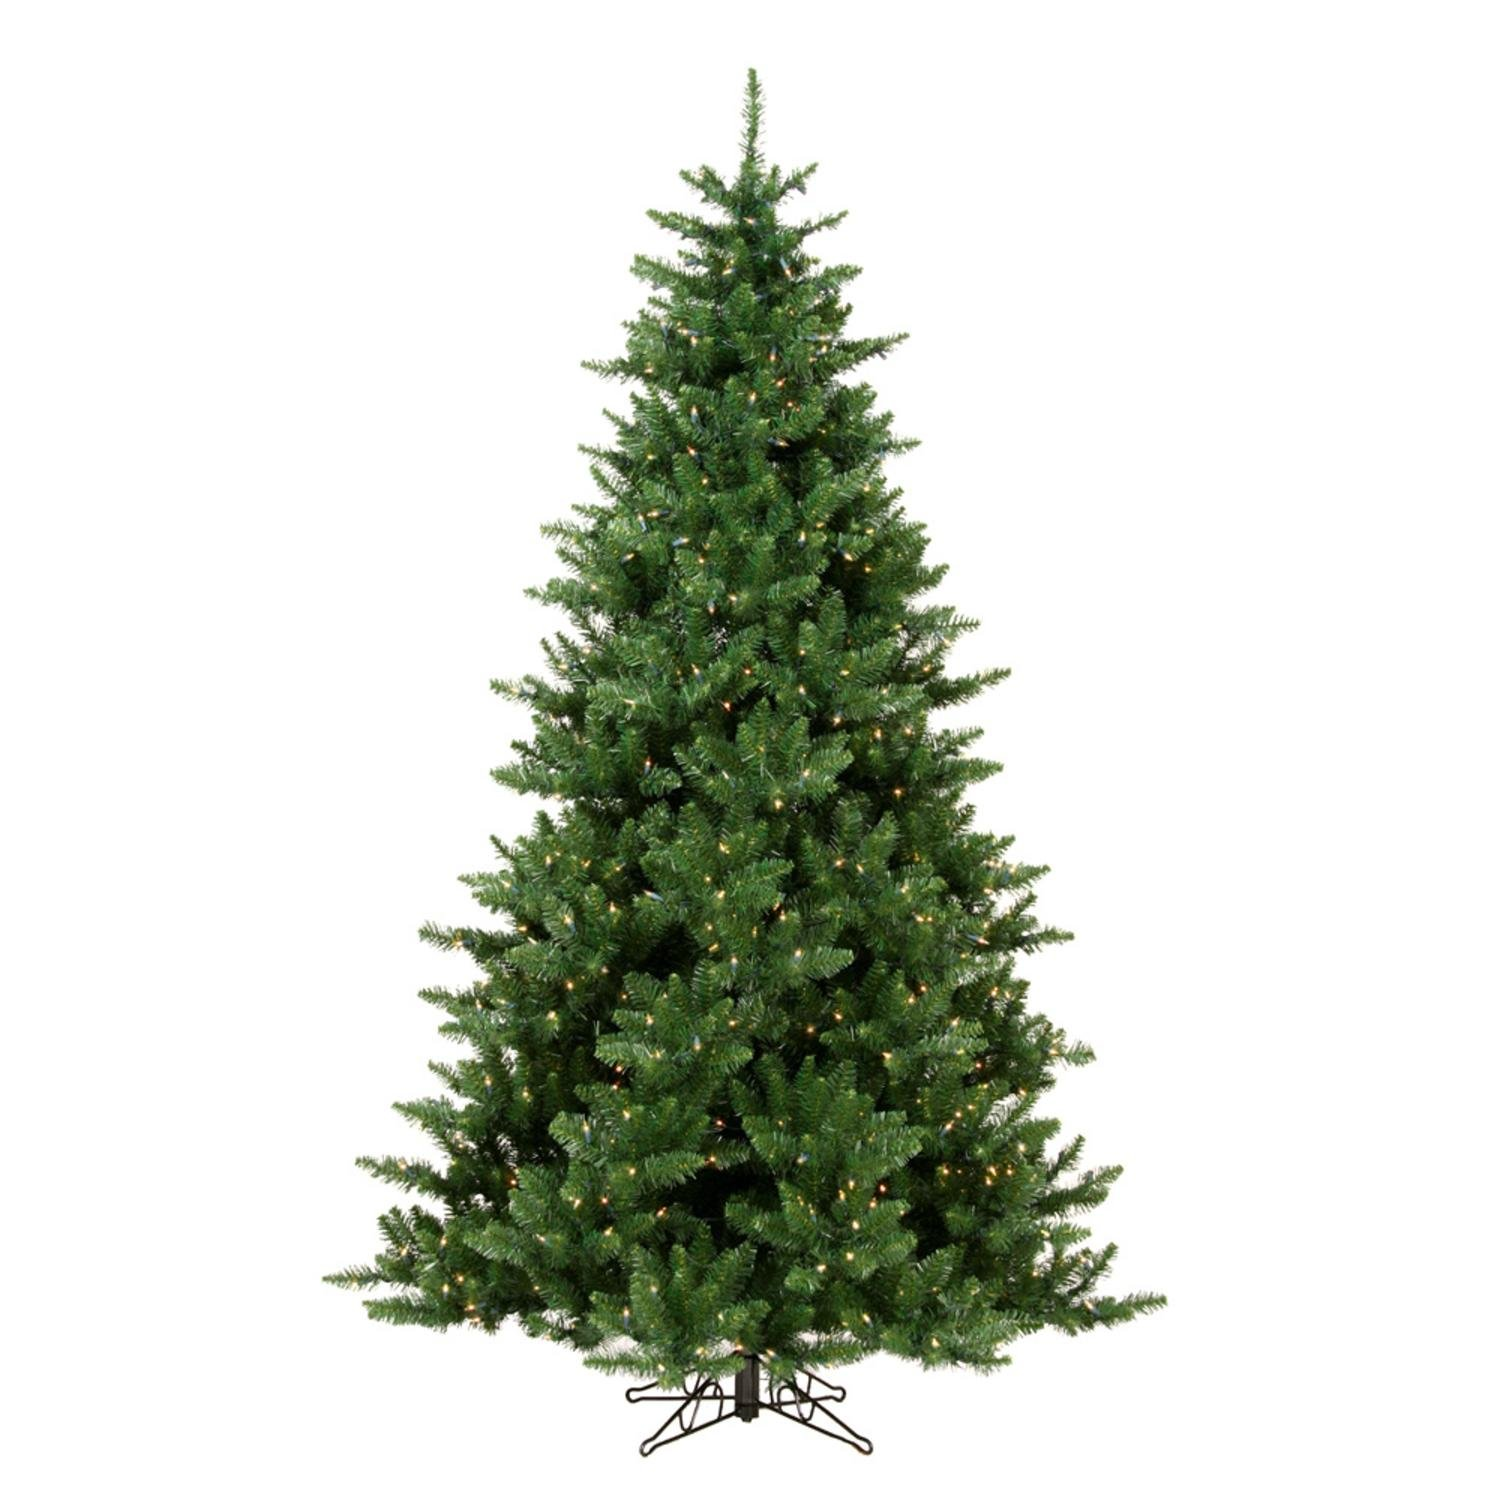 a50c0c21b98 Amazon.com  12  Pre-Lit Northern Pine Full Artificial Christmas Tree - Clear  Lights  Home   Kitchen